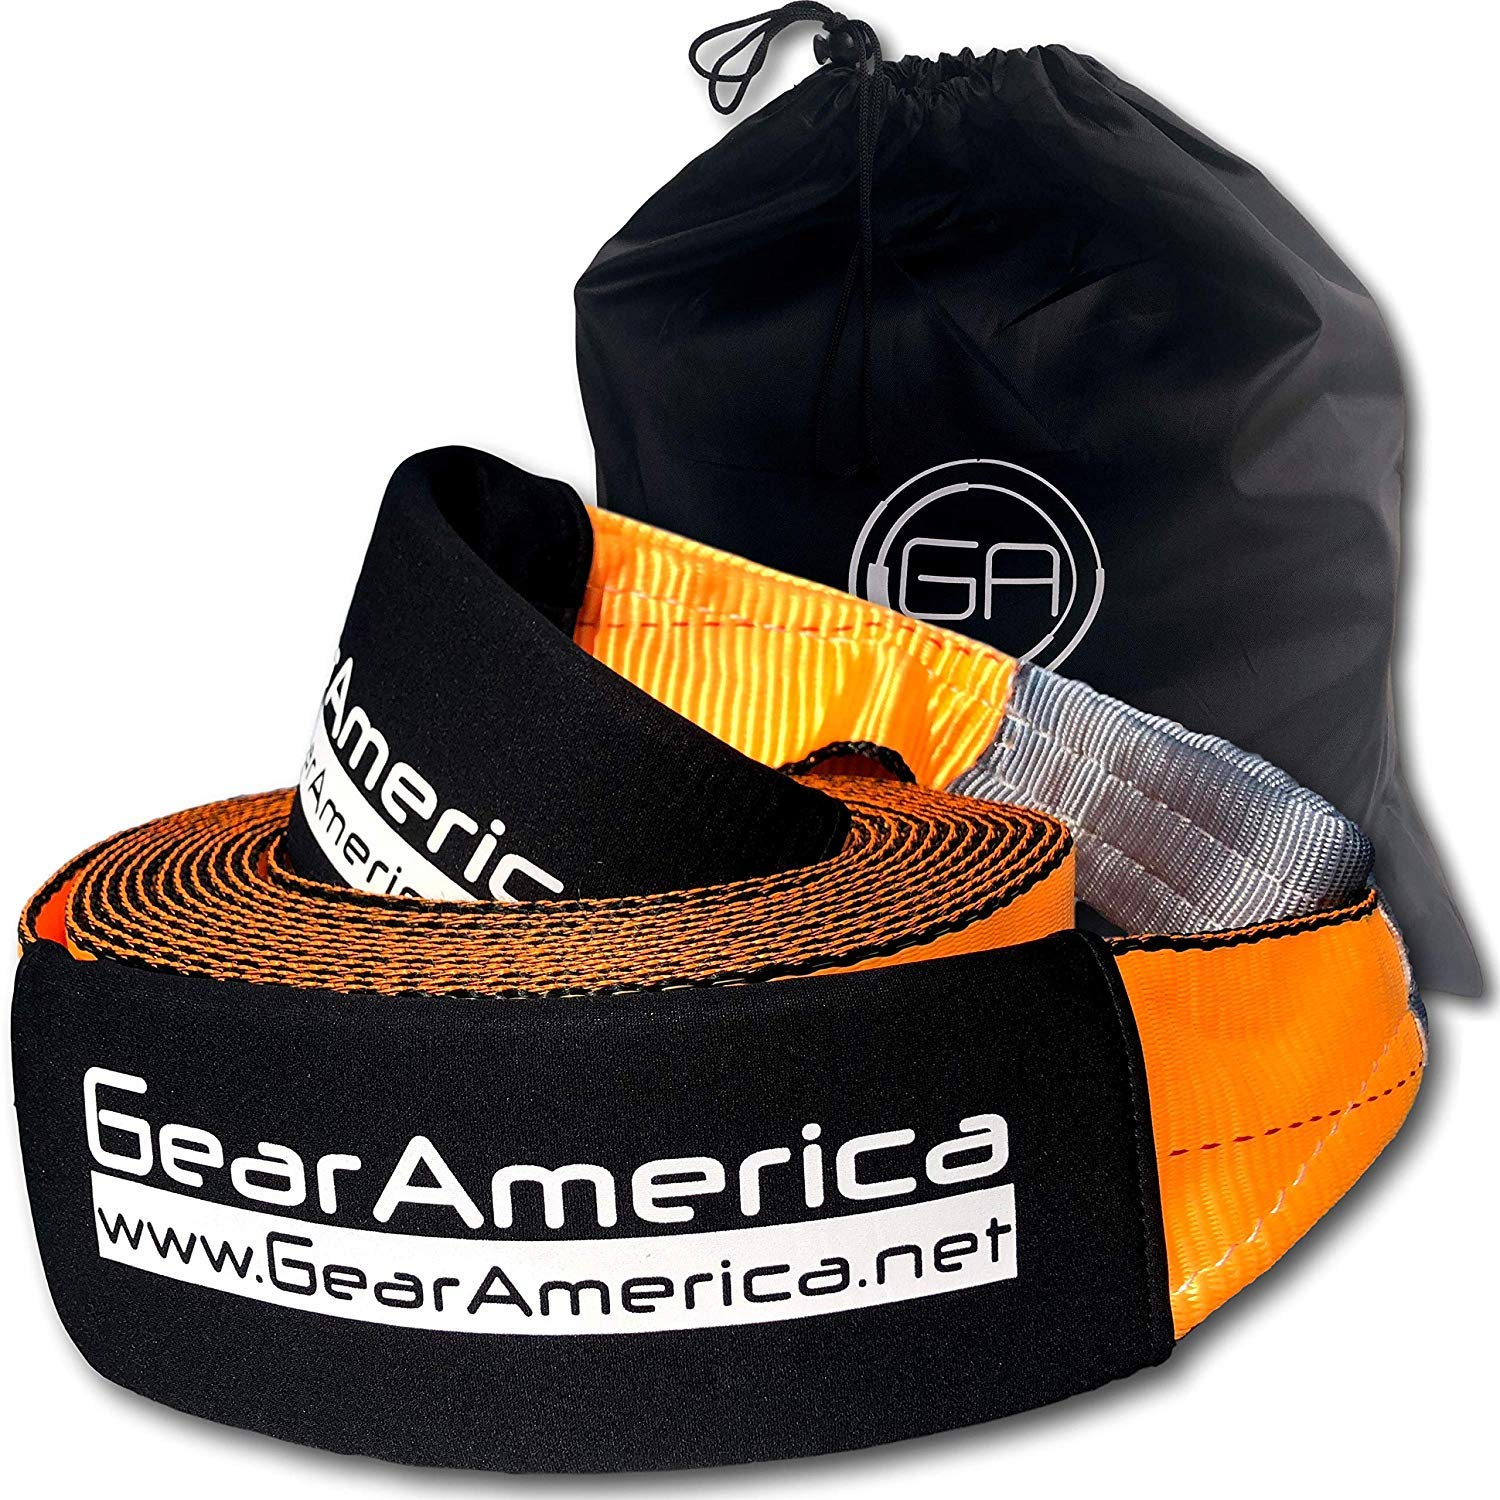 GearAmerica Recovery Tow Strap 4'' x 30' | Ultra Heavy Duty 40,000 lbs (20 Tons) Strength | Triple Reinforced Loops + Protective Sleeves | Emergency Truck Towing | Free Storage Bag + Strap by GearAmerica